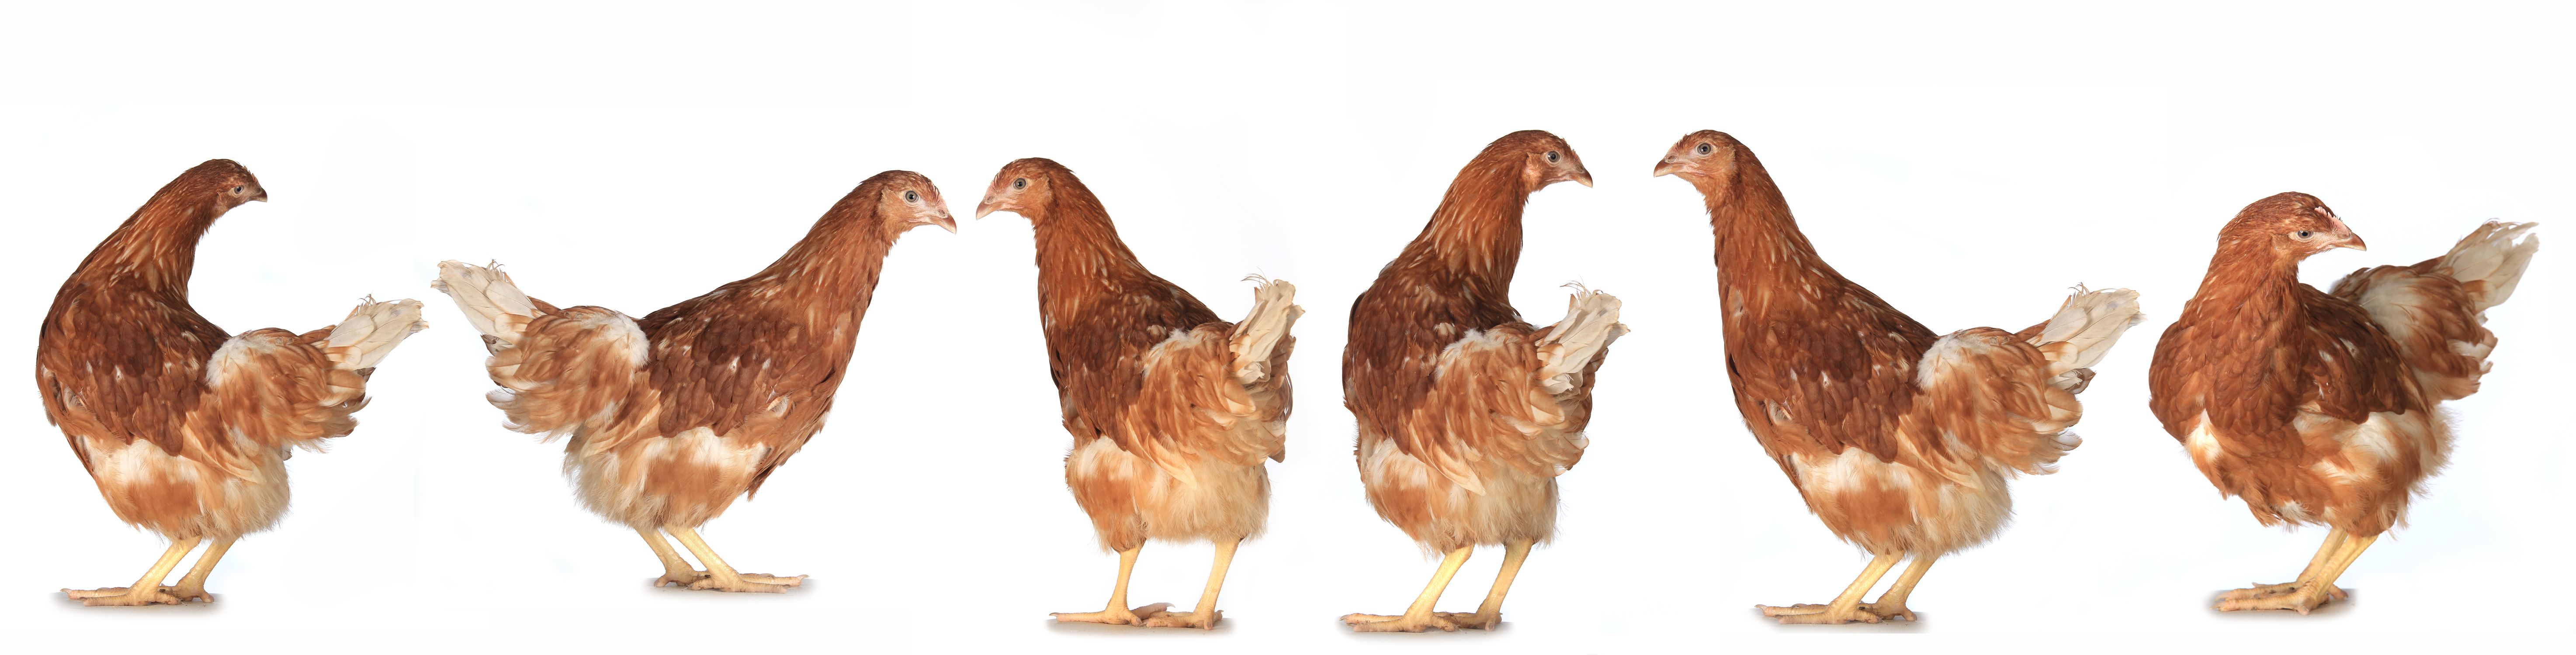 How much do PASTURED free range eggs cost